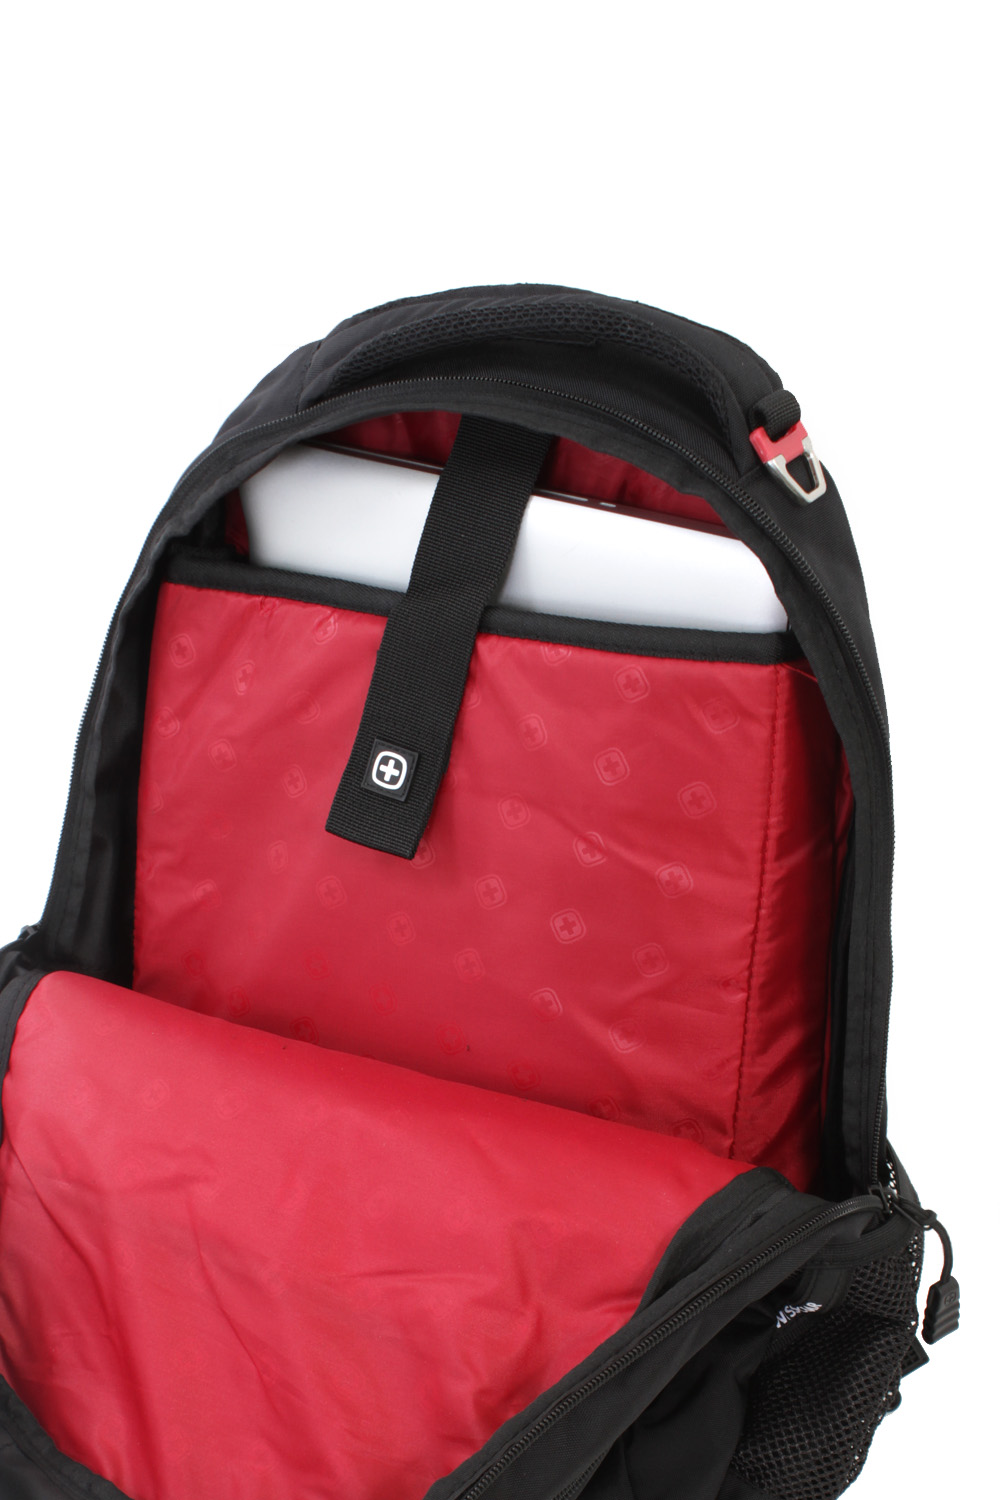 SWISSGEAR 6631 Laptop Backpack - Black/Red